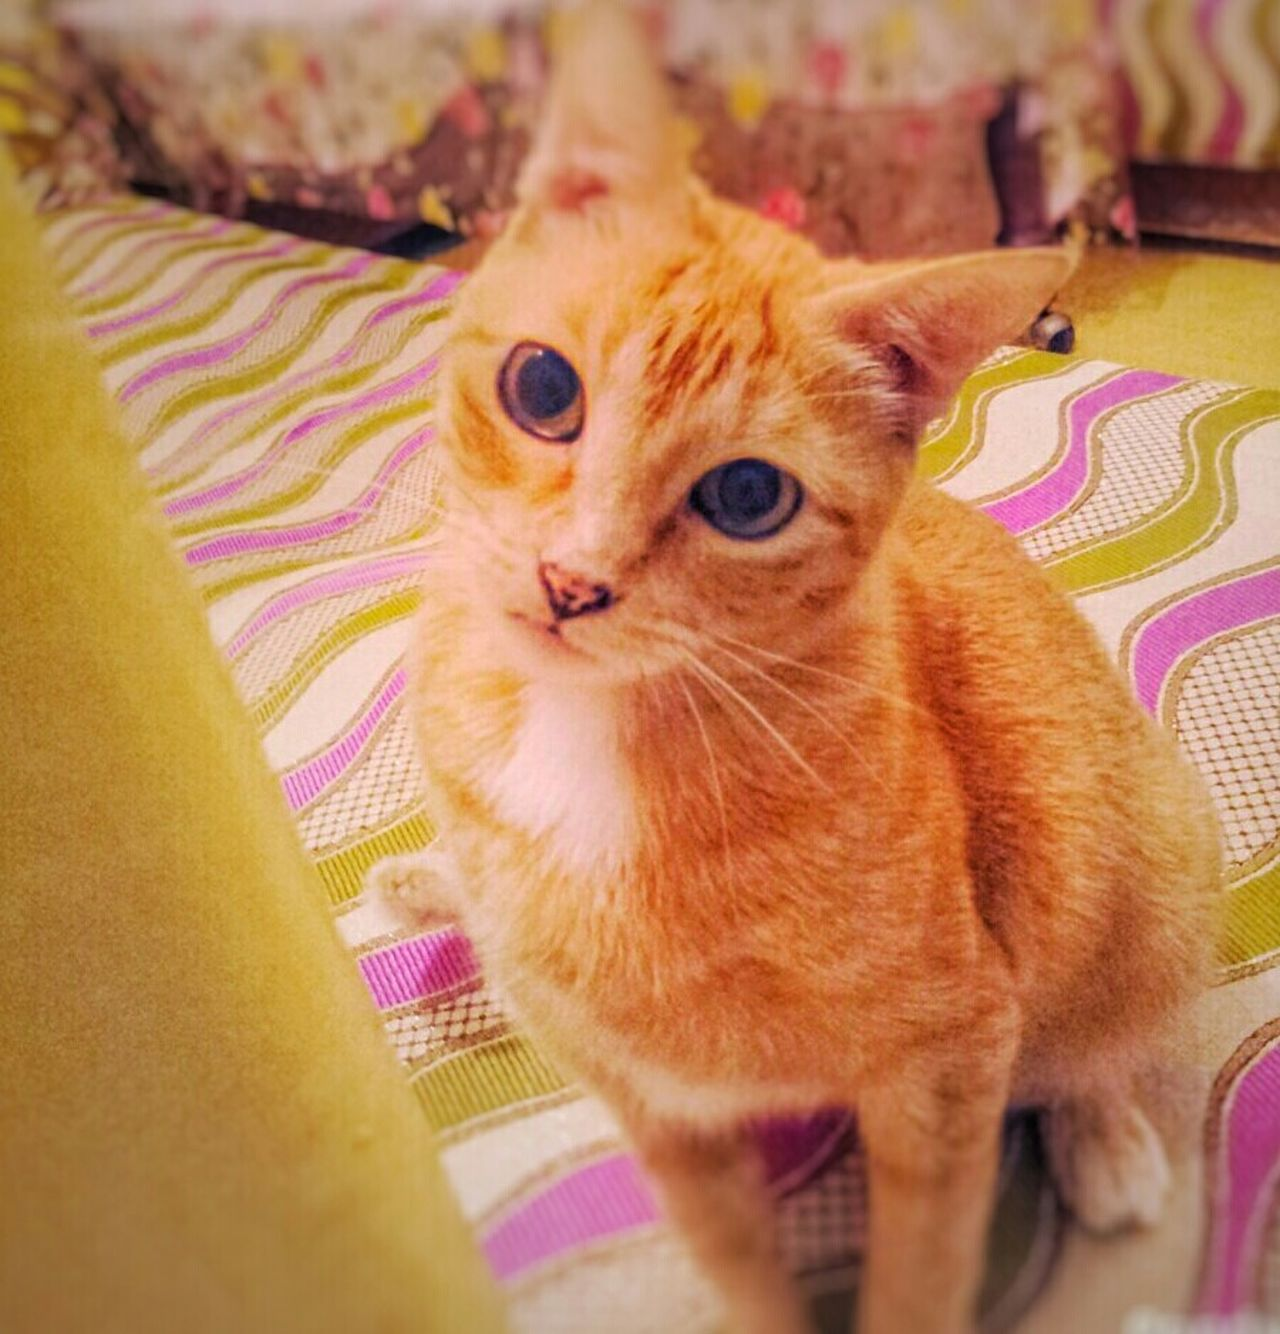 Pets One Animal Domestic Animals Domestic Cat Animal Themes No People Sweet Cat Orange Cat No Person Say Hello My Cat♥